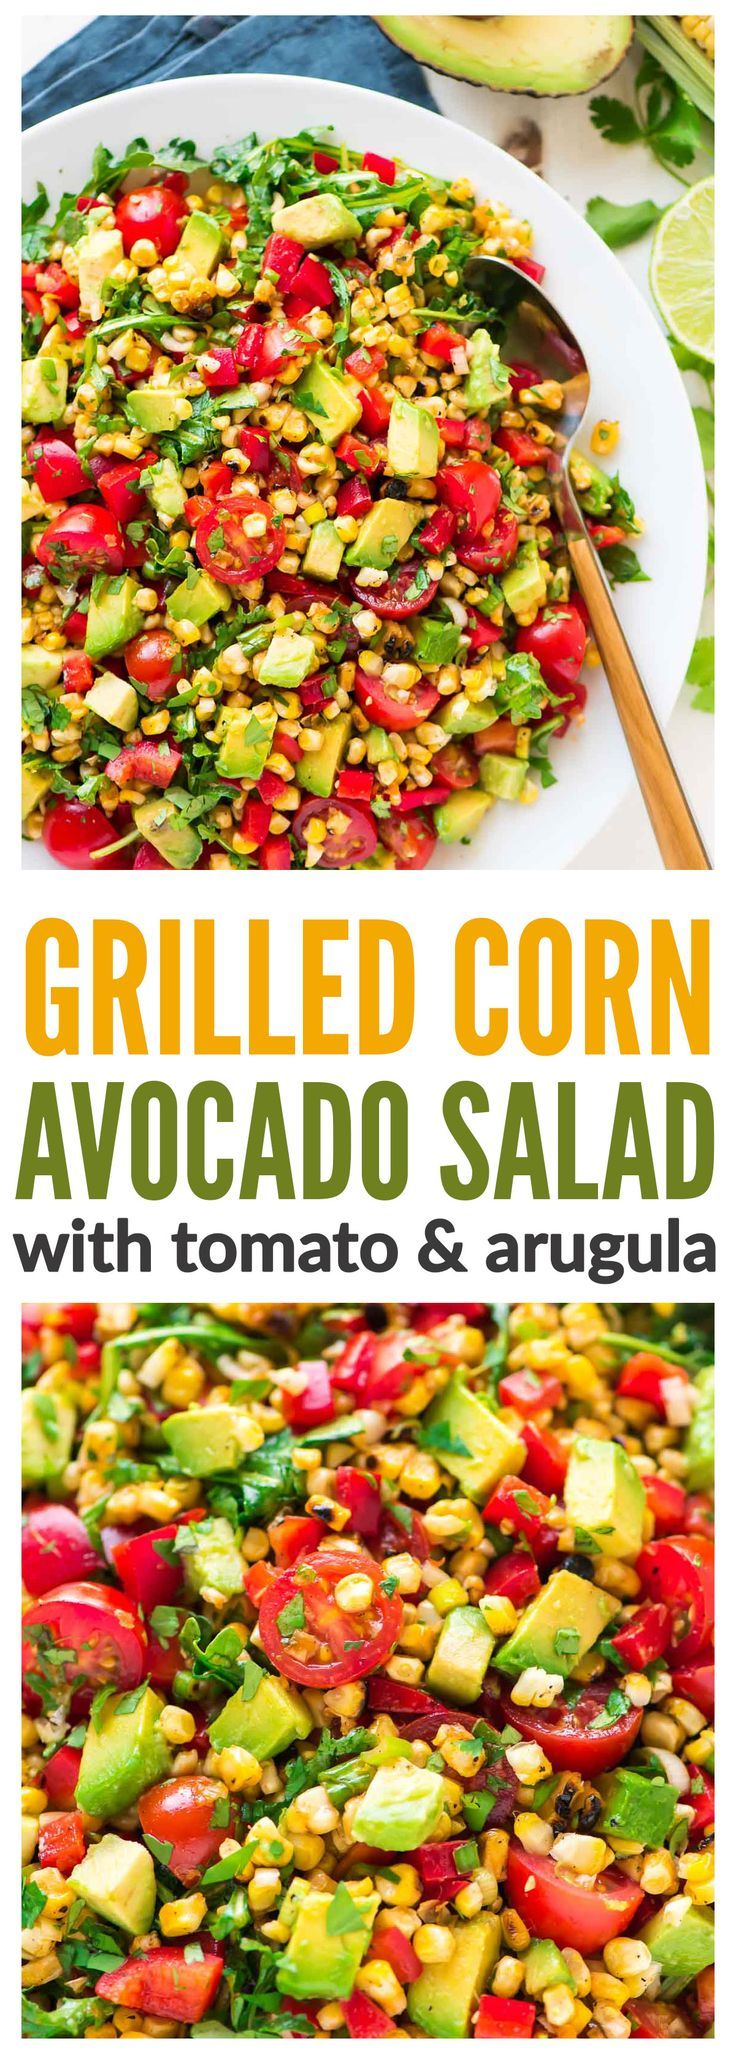 Grilled Corn Salad with Avocado, Tomato and Arugula. Summer's best side dish! Simple, delicious, and healthy recipe that's great for picnics, barbecues, and weeknight dinners. {gluten free} Recipe at wellplated.com | @wellplated